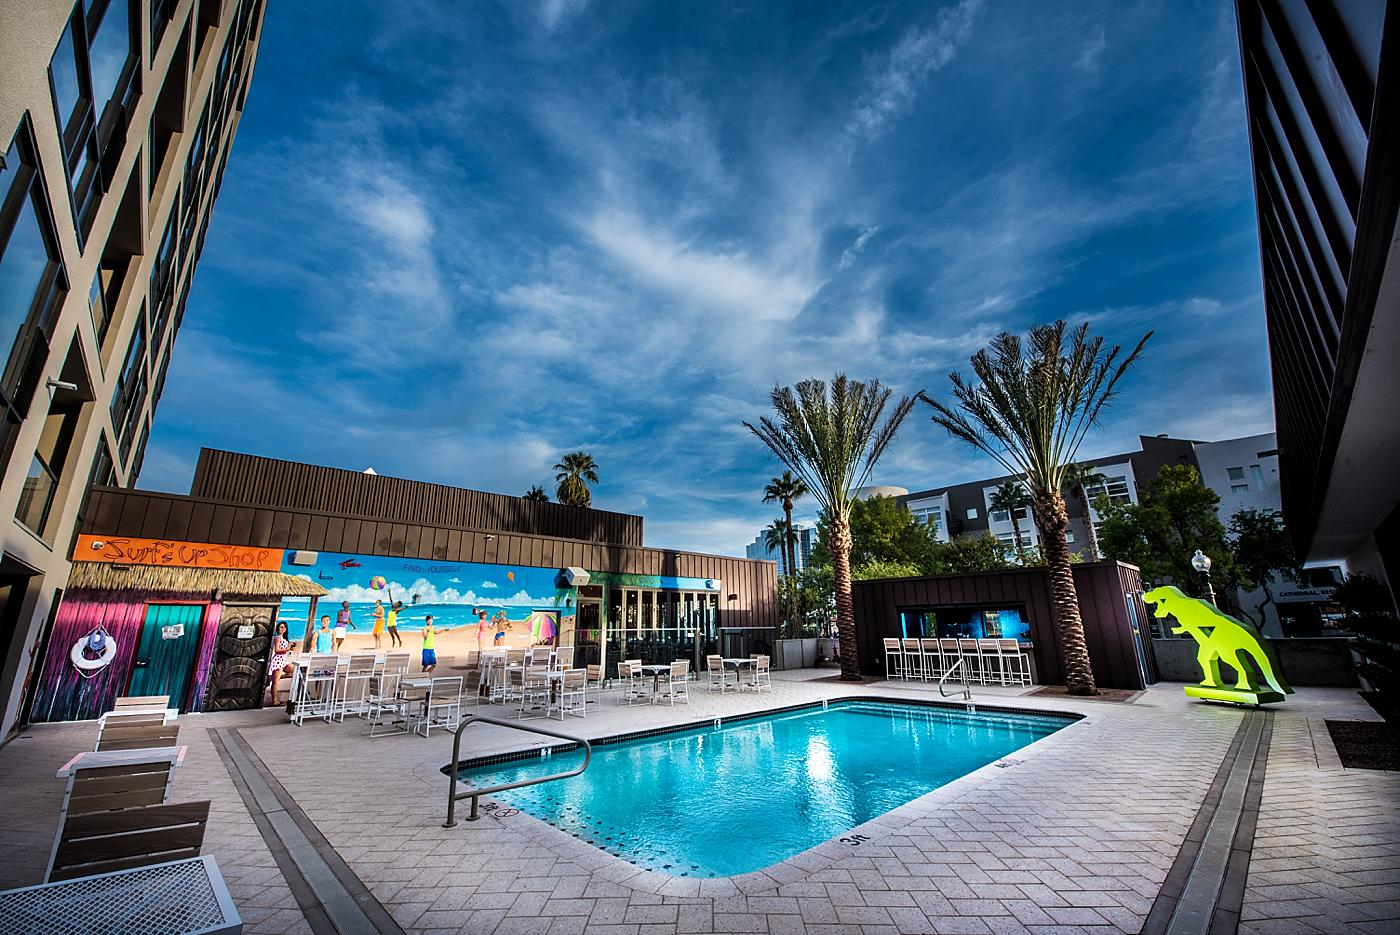 0116-foundre-phoenix-hotel-commercial-photography-2016ther2studio